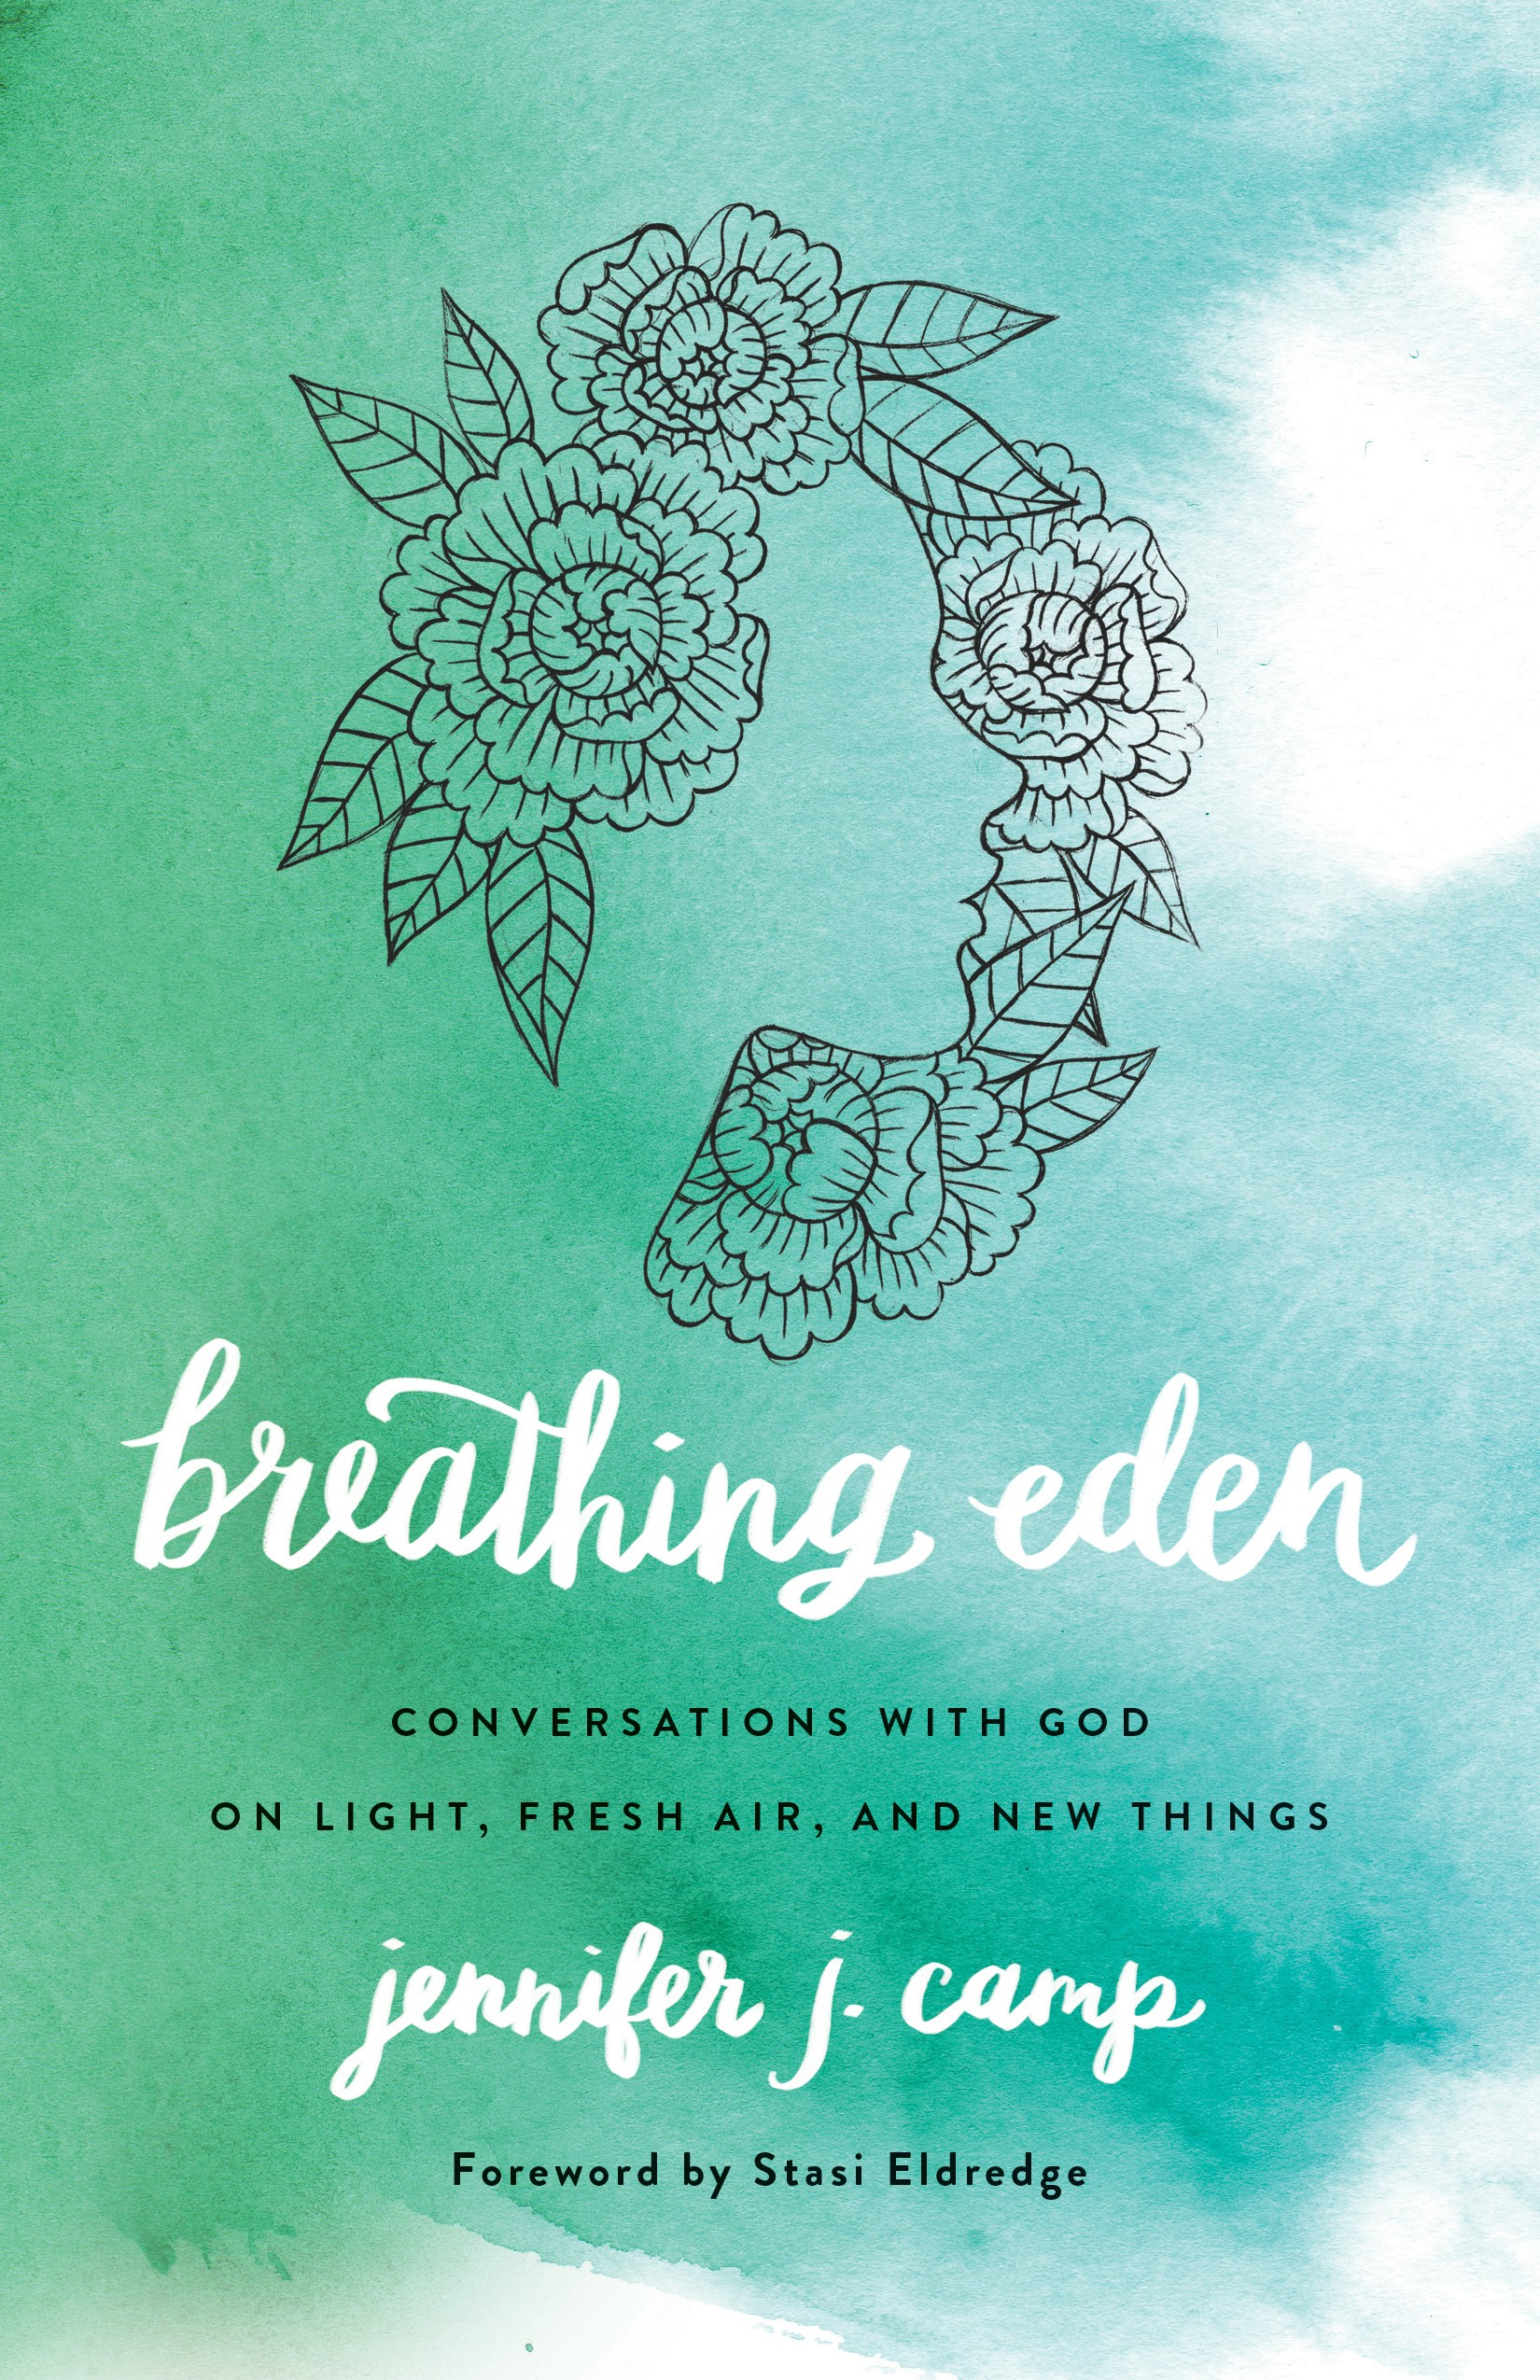 Click the image above to start reading  Breathing Eden .